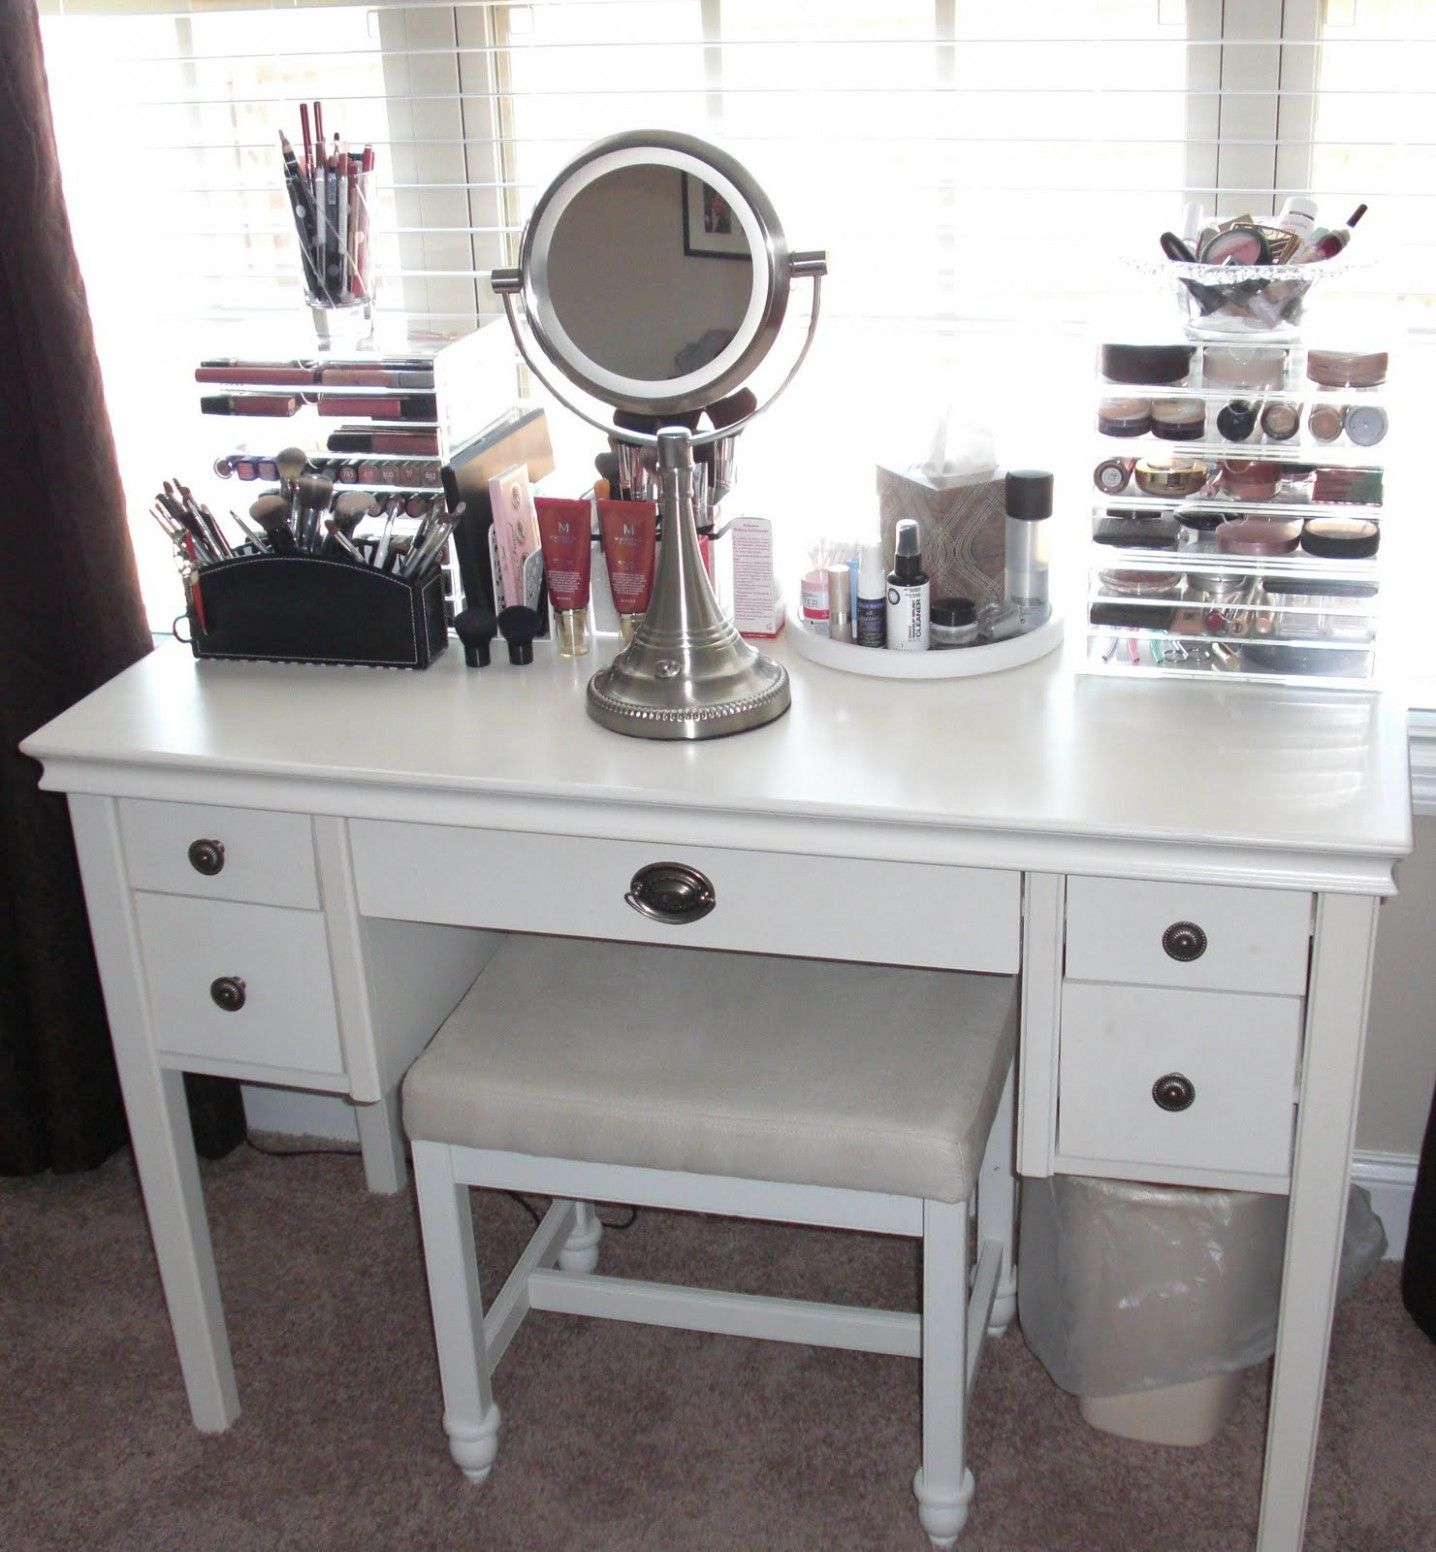 Bedroom Vanity Sets Canada In 2020 Vanity Set Up Makeup Vanity Storage Small Bedroom Vanity